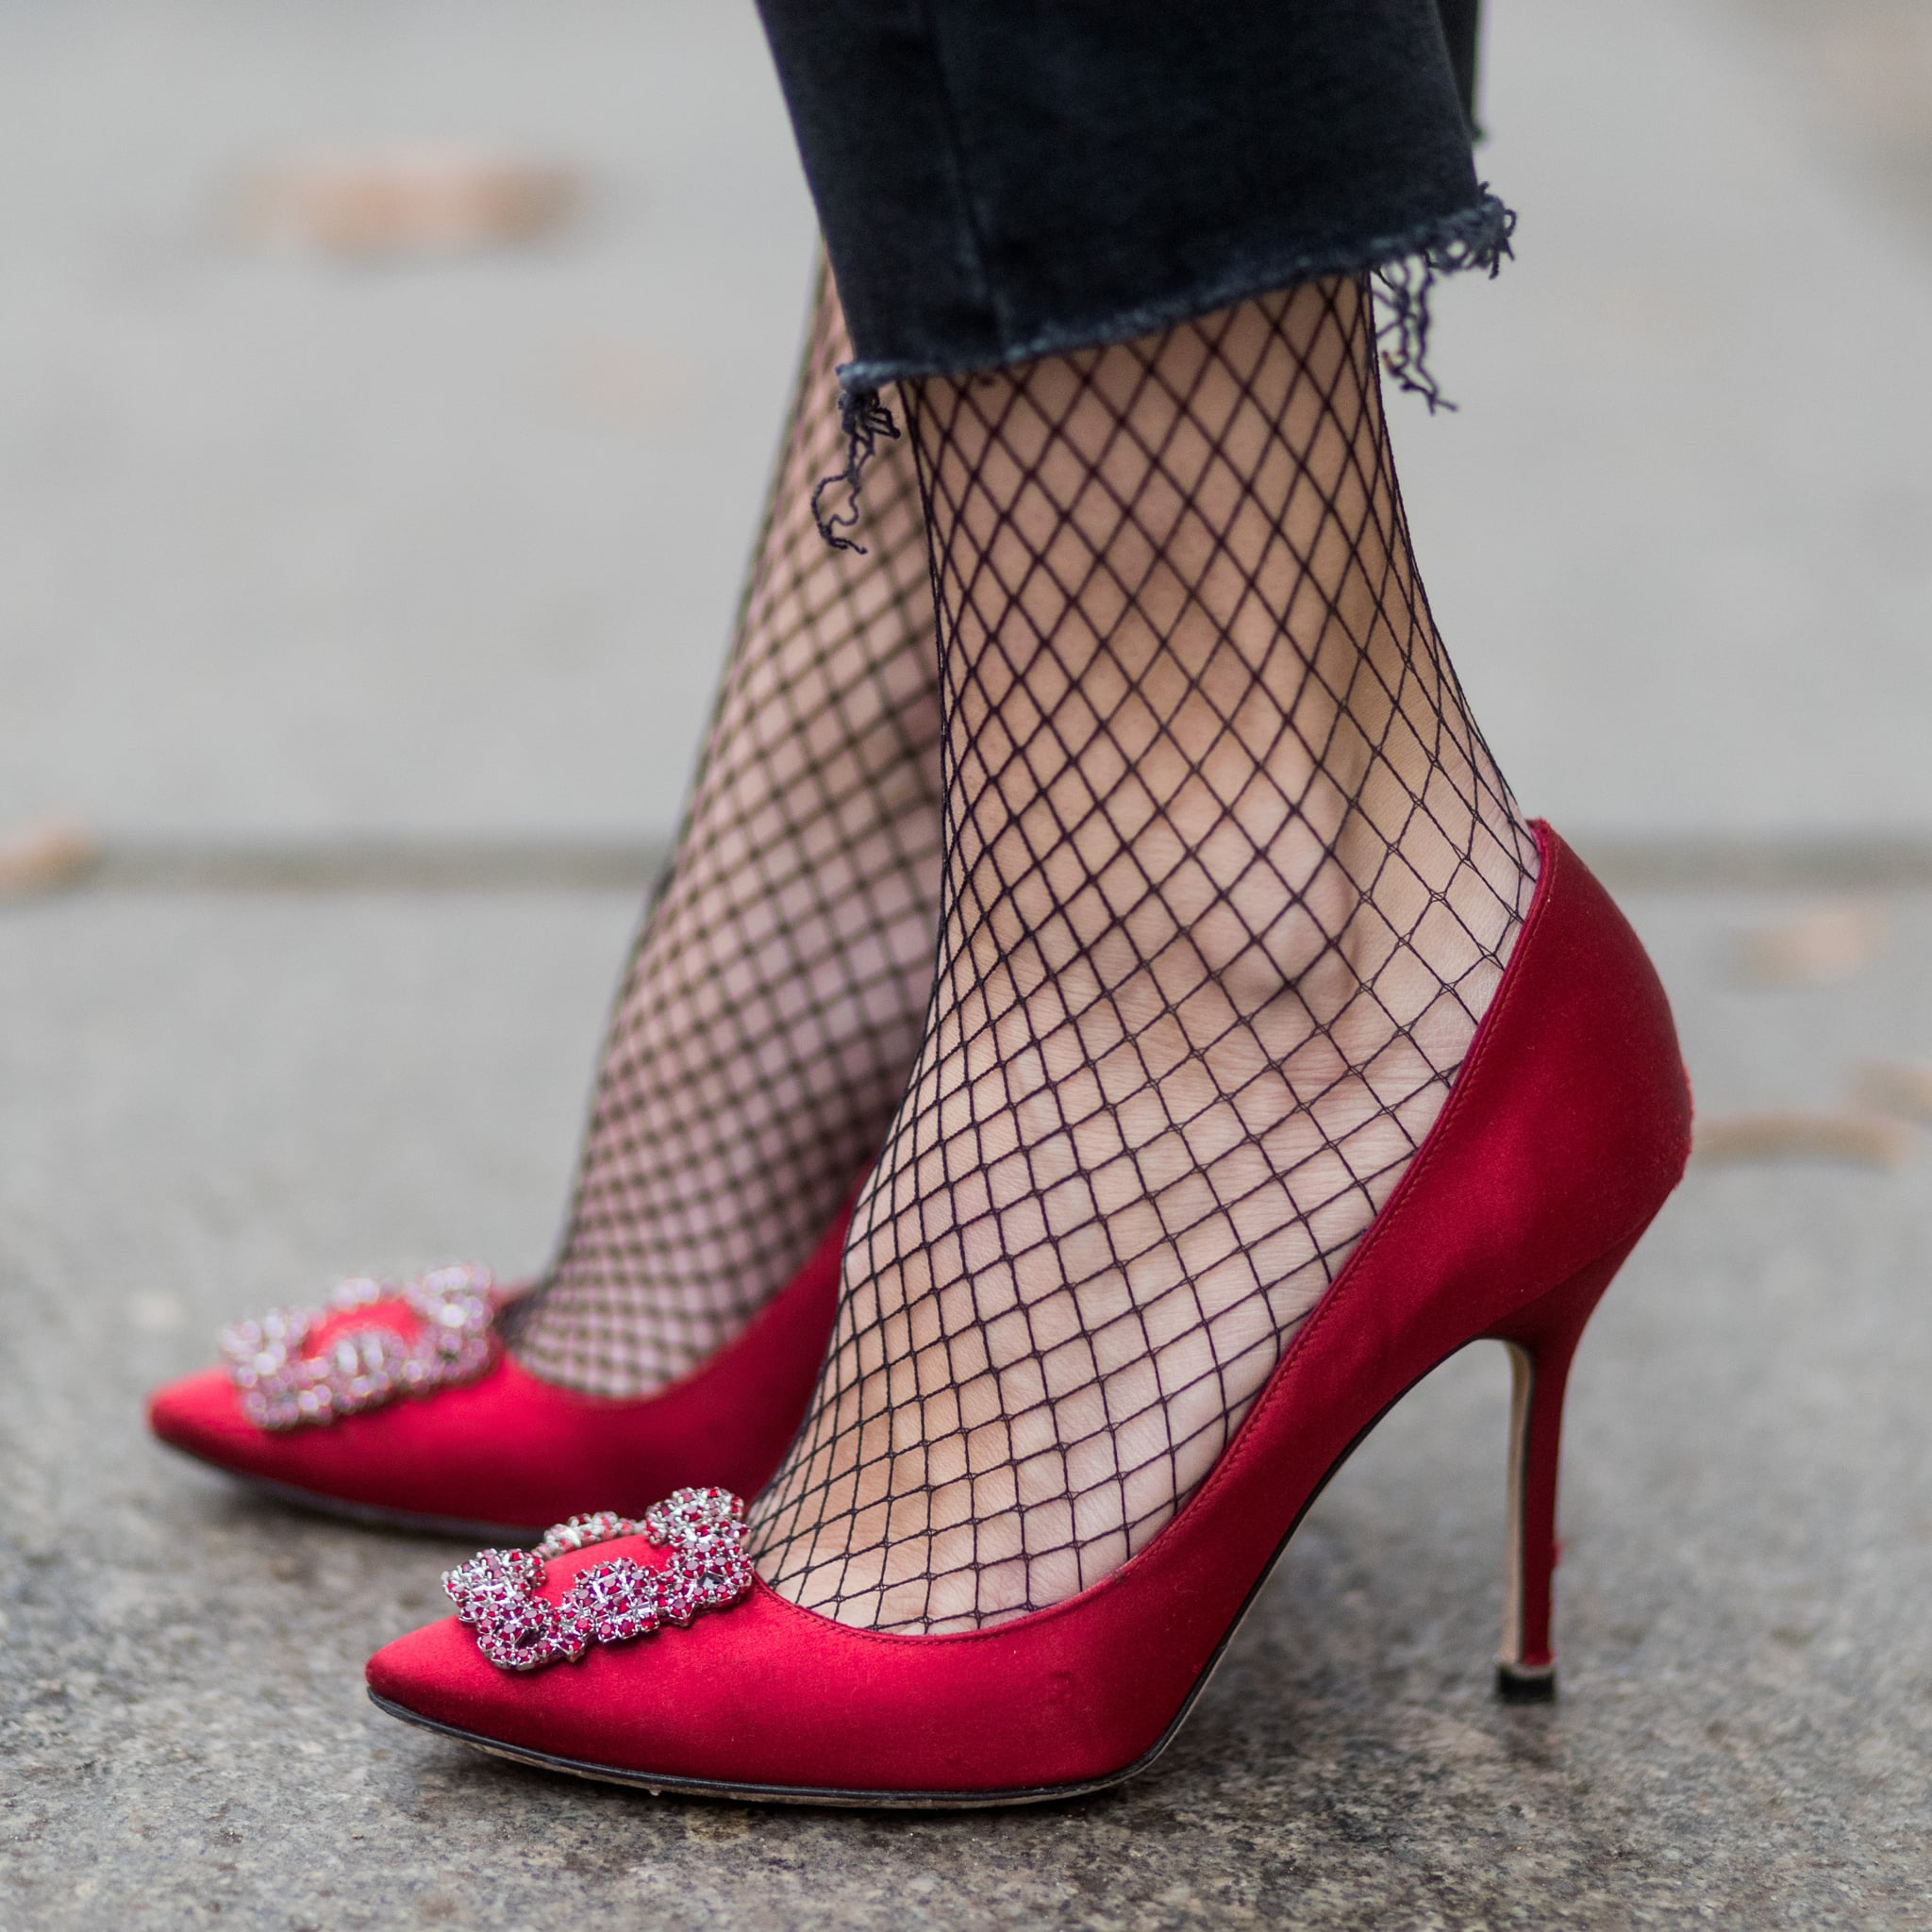 Cheap Party Heels to Wear This Holiday